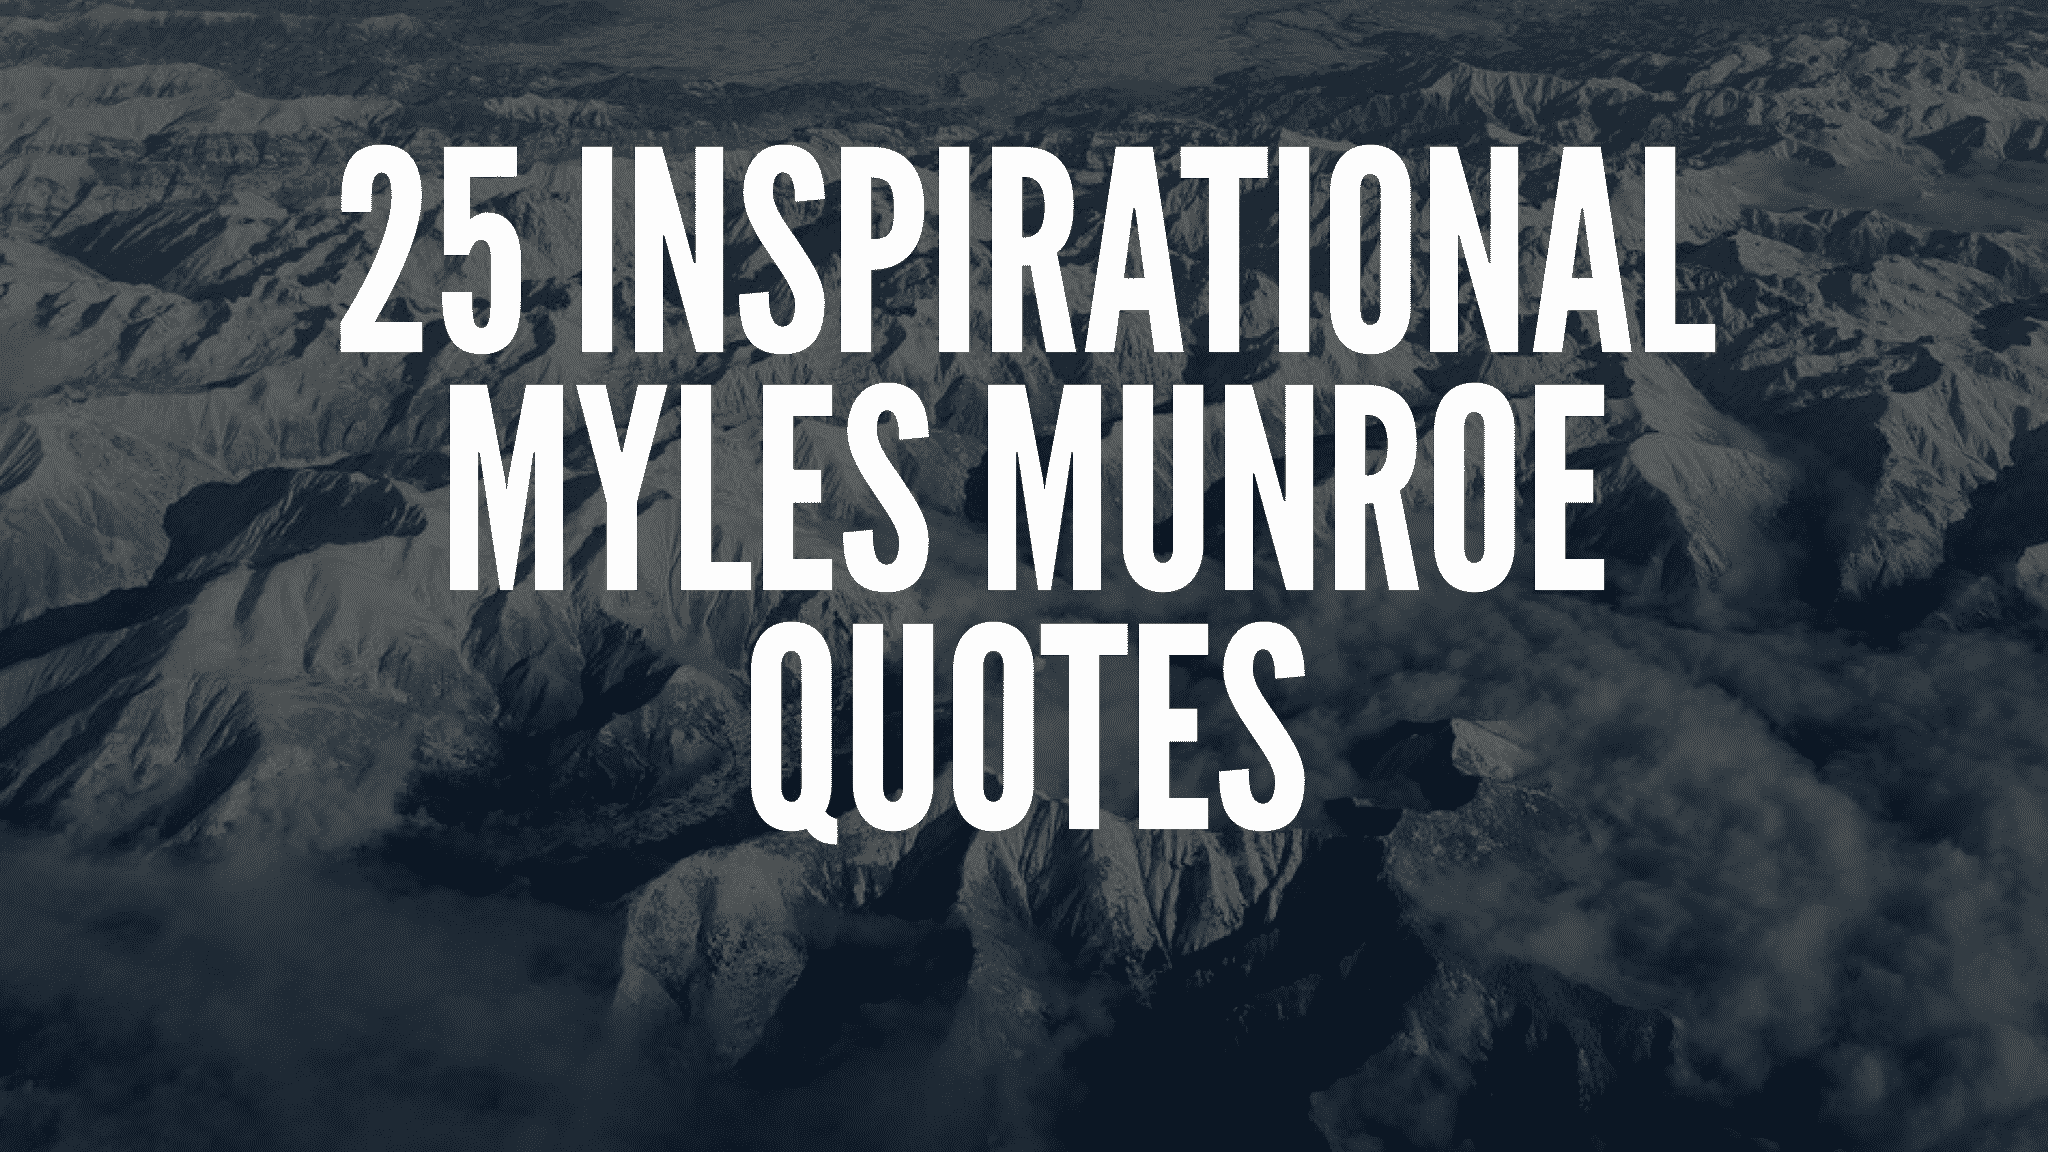 25 Inspirational Myles Munroe Quotes